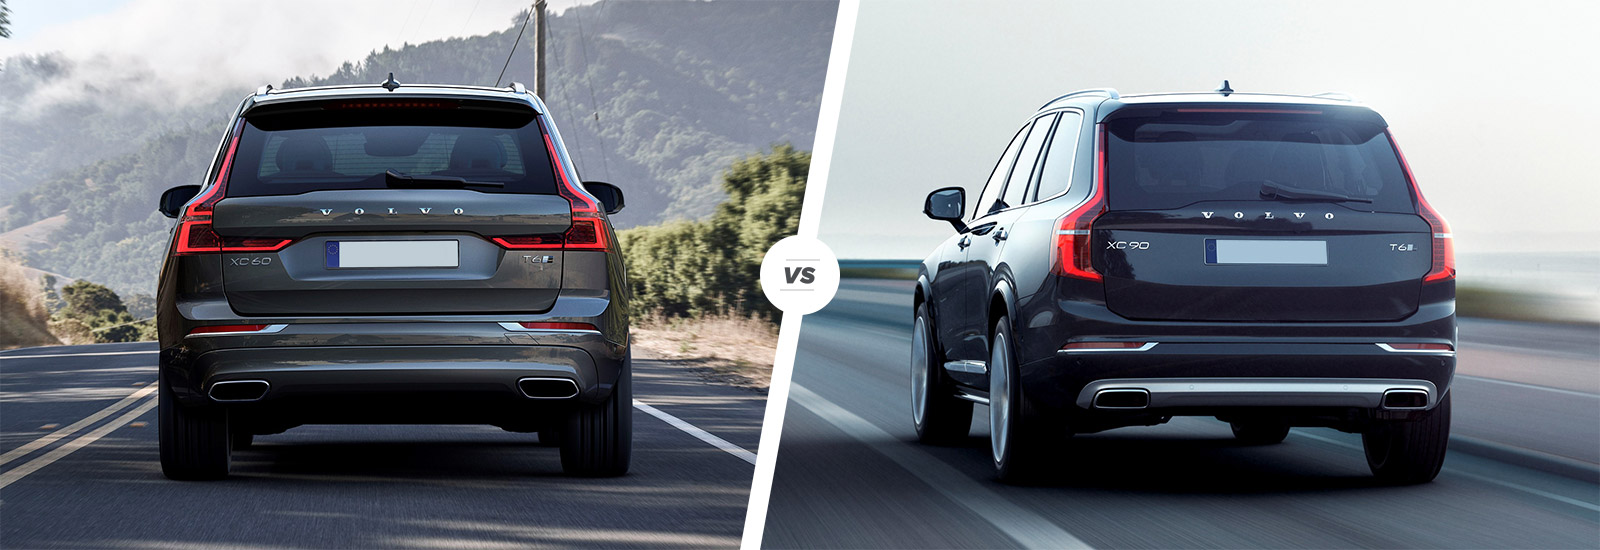 small resolution of volvo xc60 vs volvo xc90 verdict